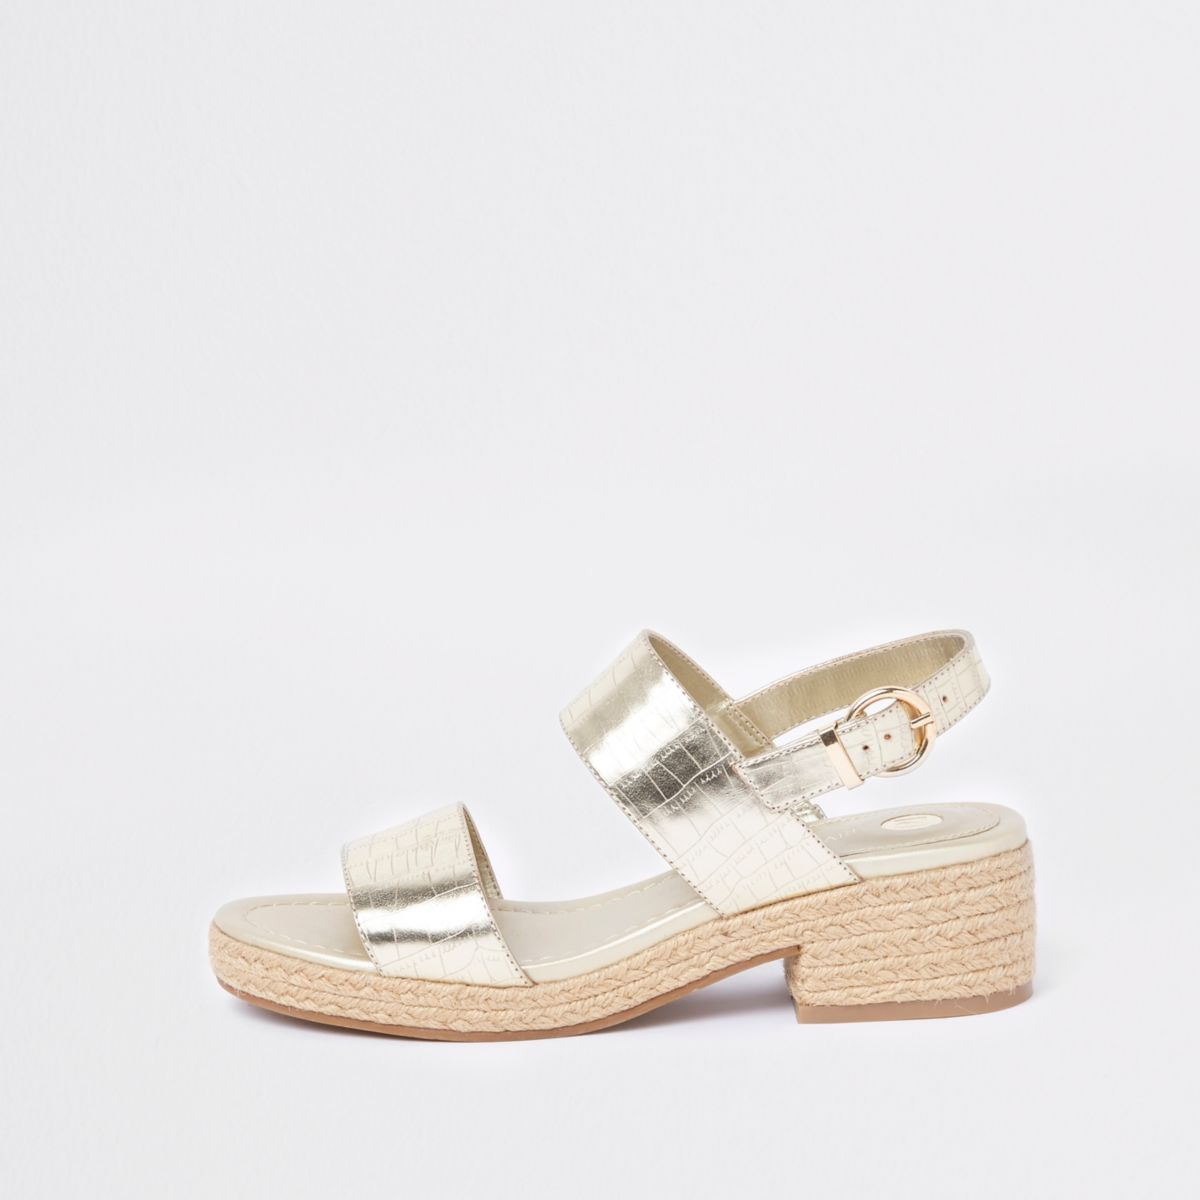 Gold Metallic Two Part Espadrille Sandals by River Island